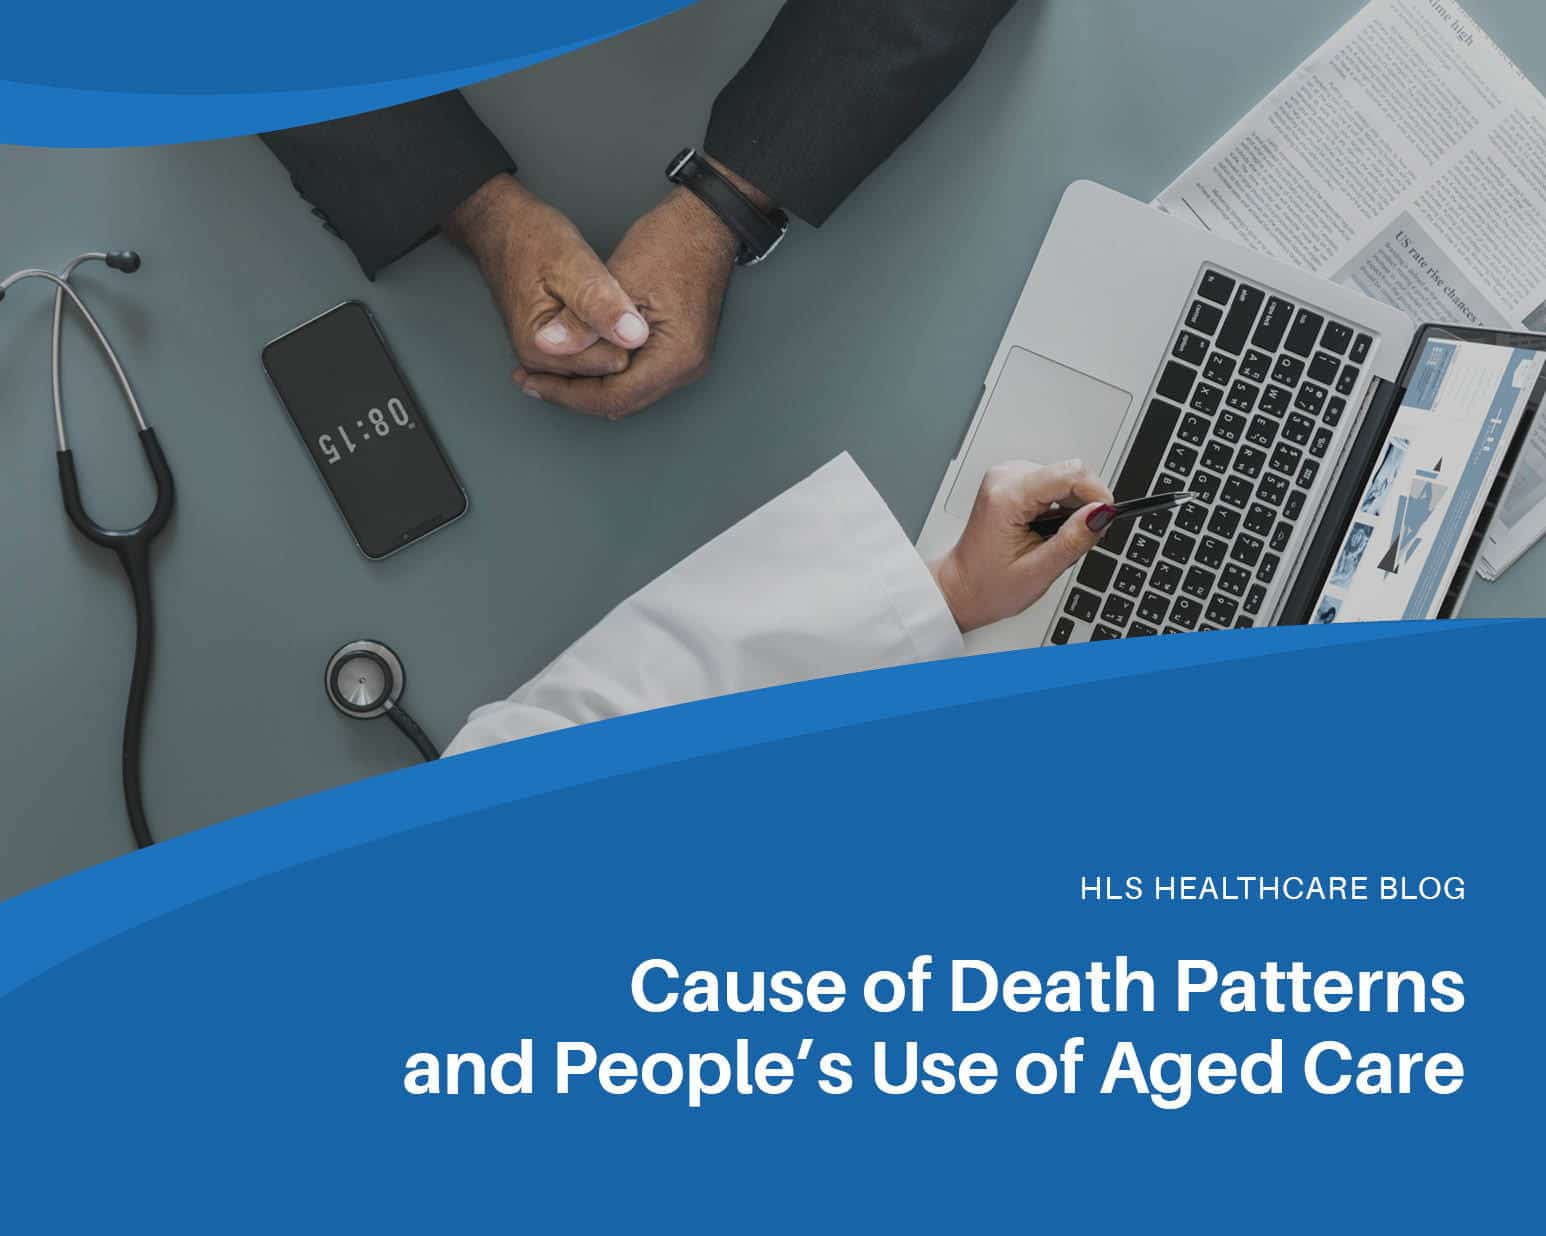 Cause of Death Patterns and People's Use of Aged Care